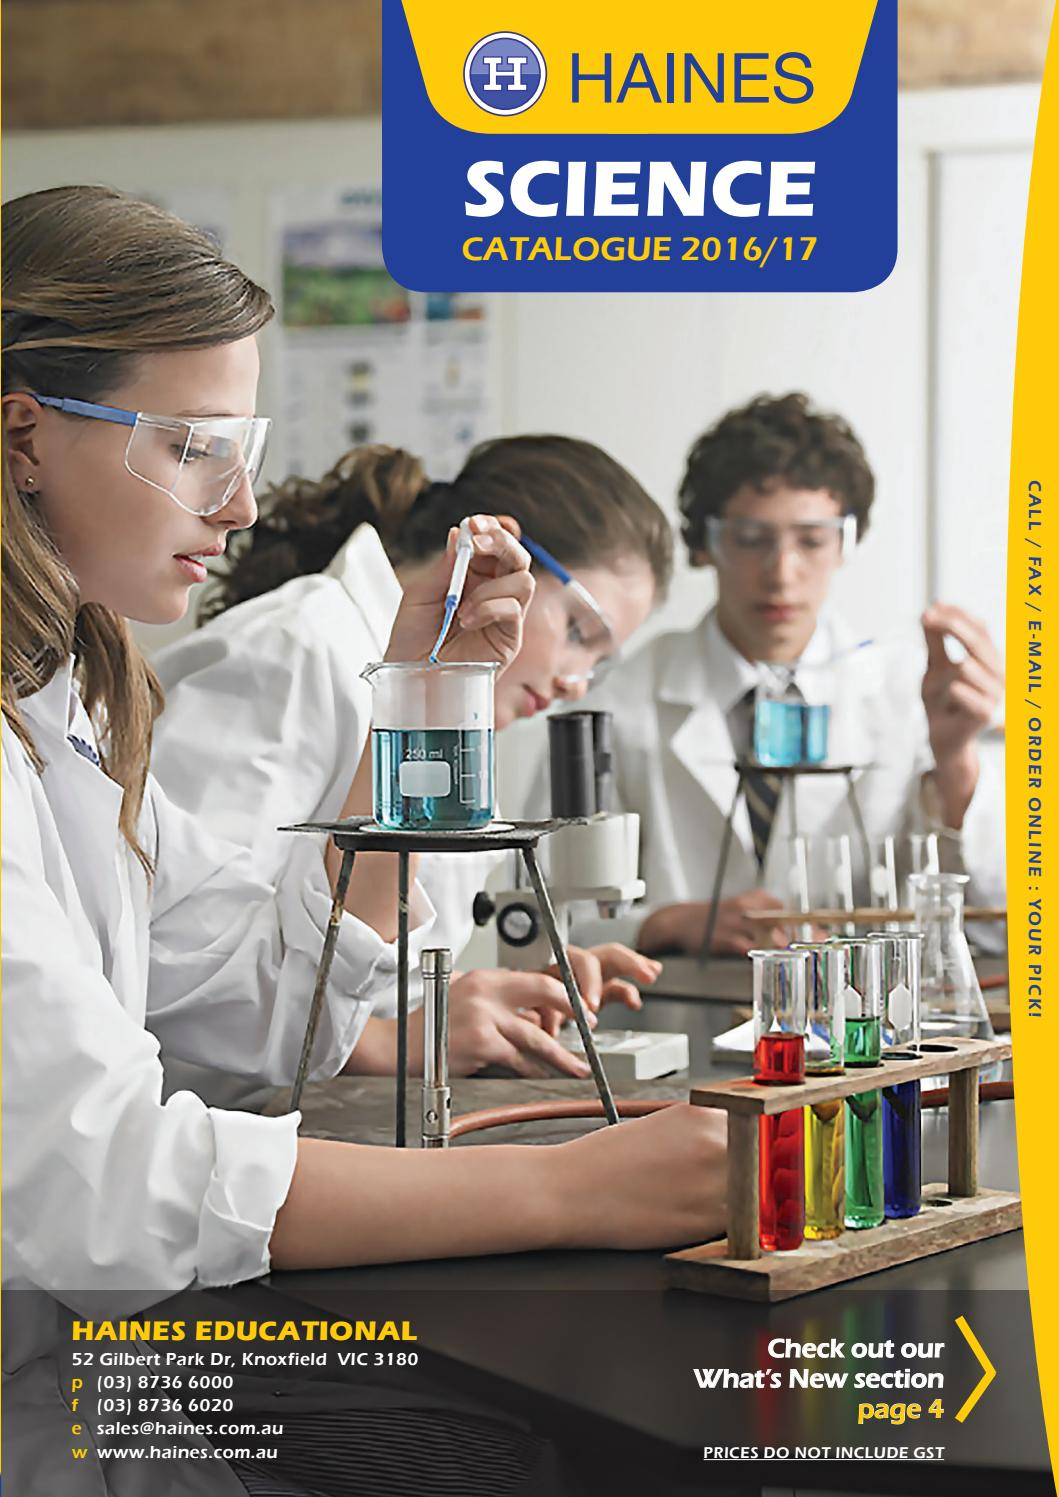 haines educational science catalogue 2016 17 by haines educational